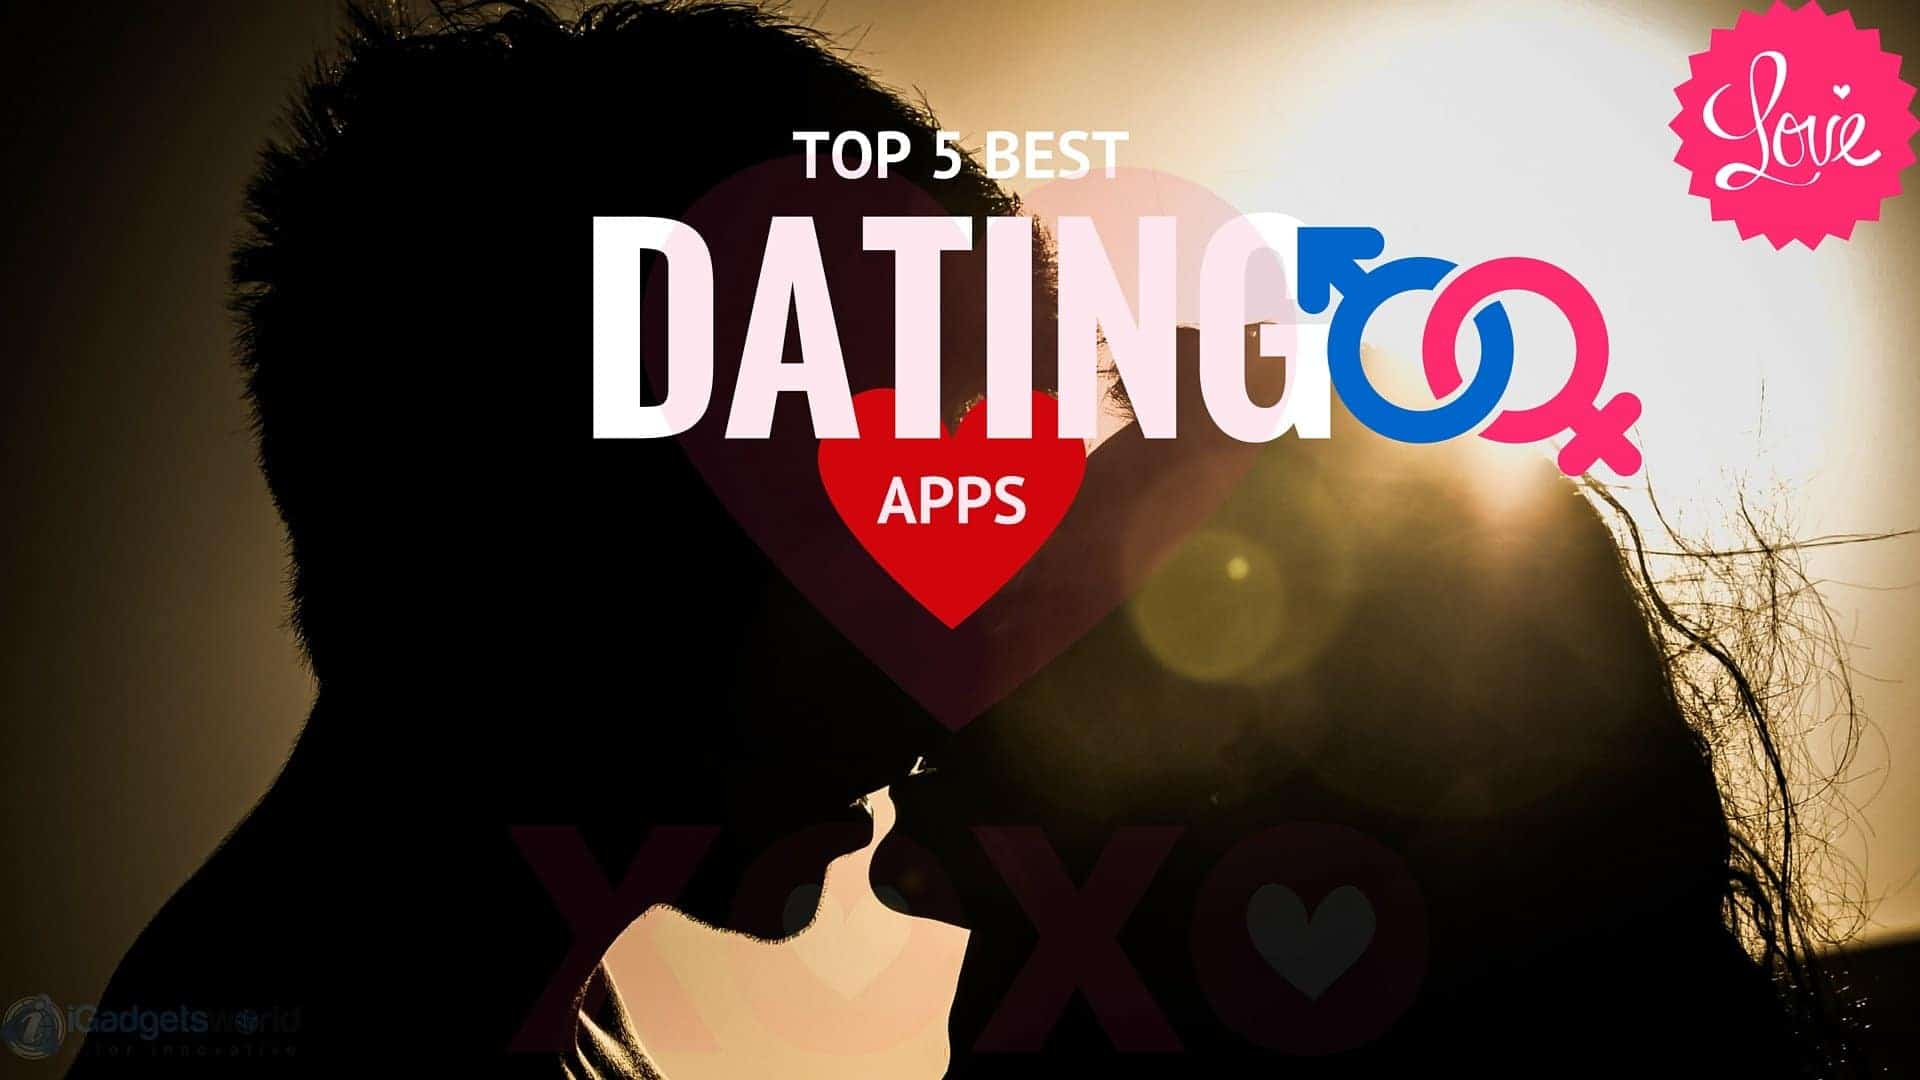 top 5 indian dating apps And in the present era, thanks to some wonderful ios and android apps, dating in india is more popular than ever so if you are looking for those awesome ios and android dating apps, here are my top 5 picks for you 1 truly madly truly madly is an indianfied version of the dating app, tinder how things worked out for me on truly madly.